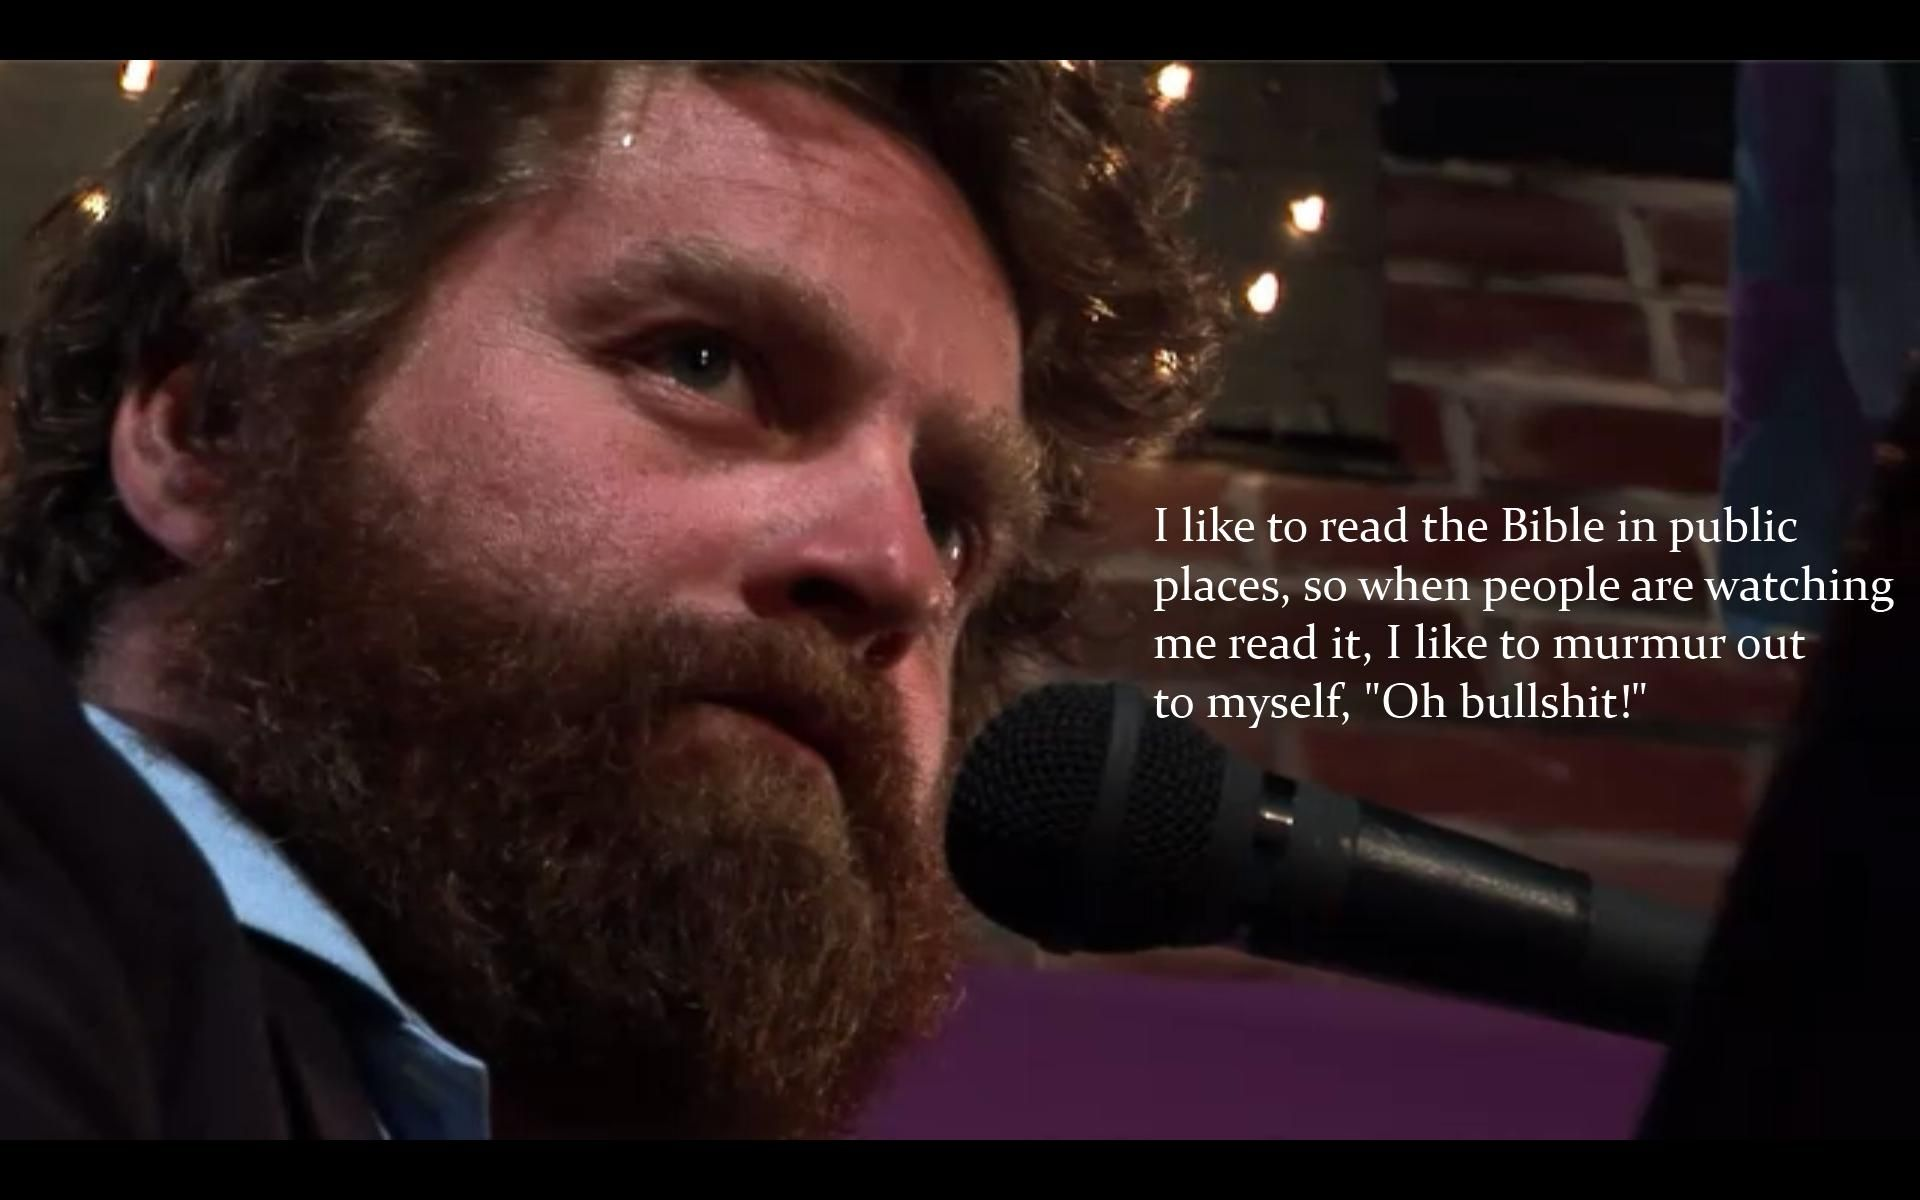 zach galifianakis quotes | zach galifianakis on the bible | debate